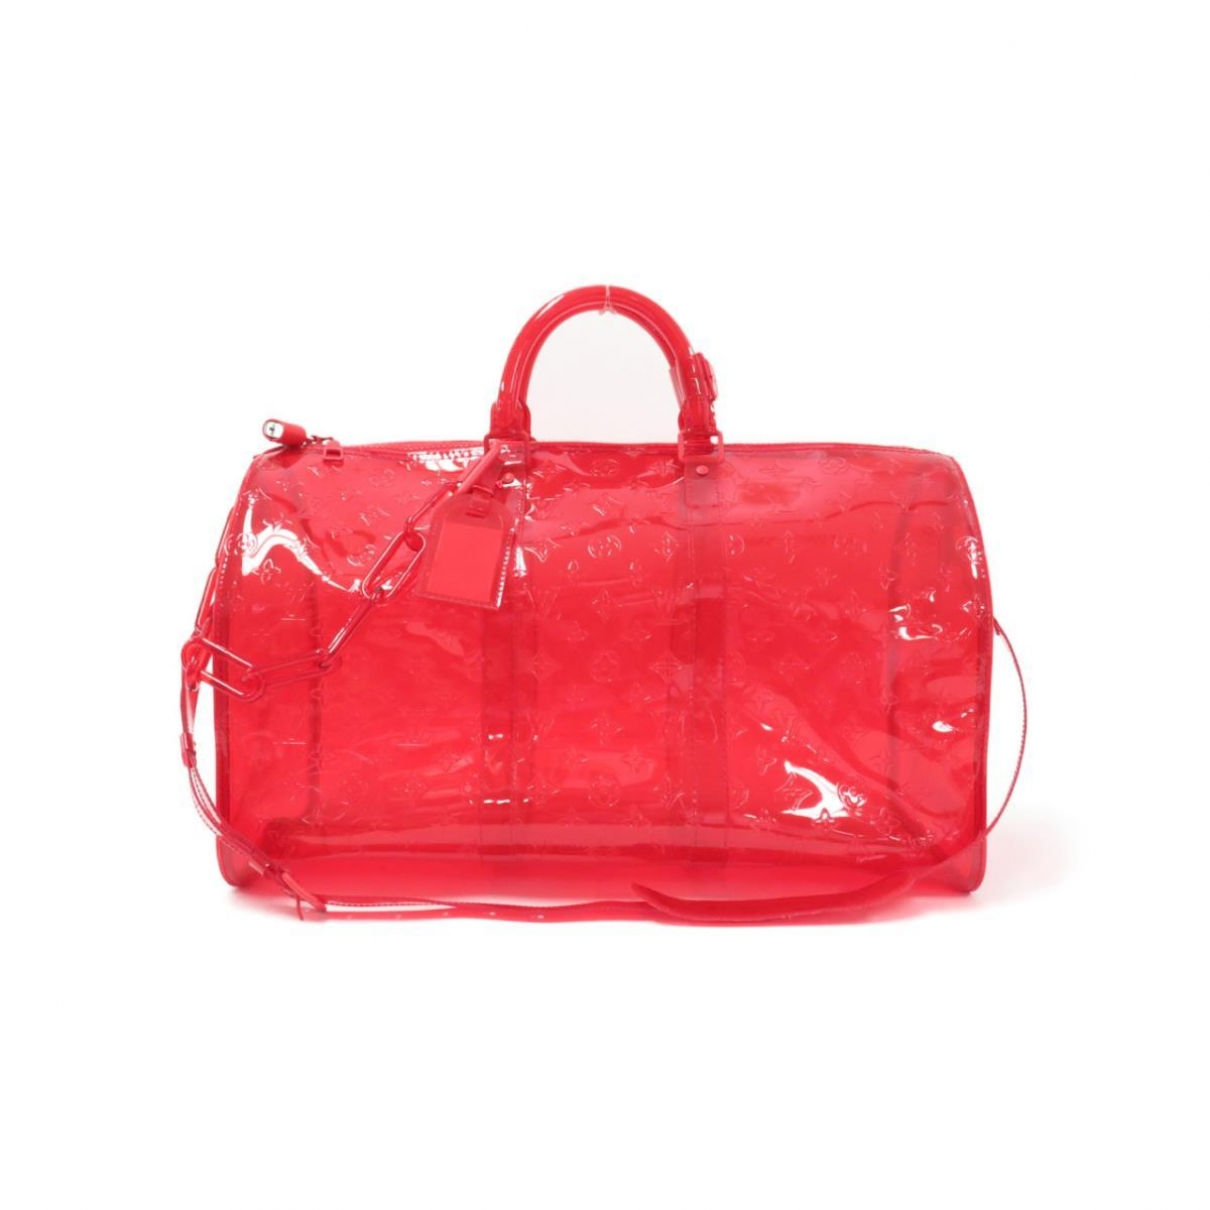 Louis Vuitton Keepall Reisetasche in  Rot Kunststoff